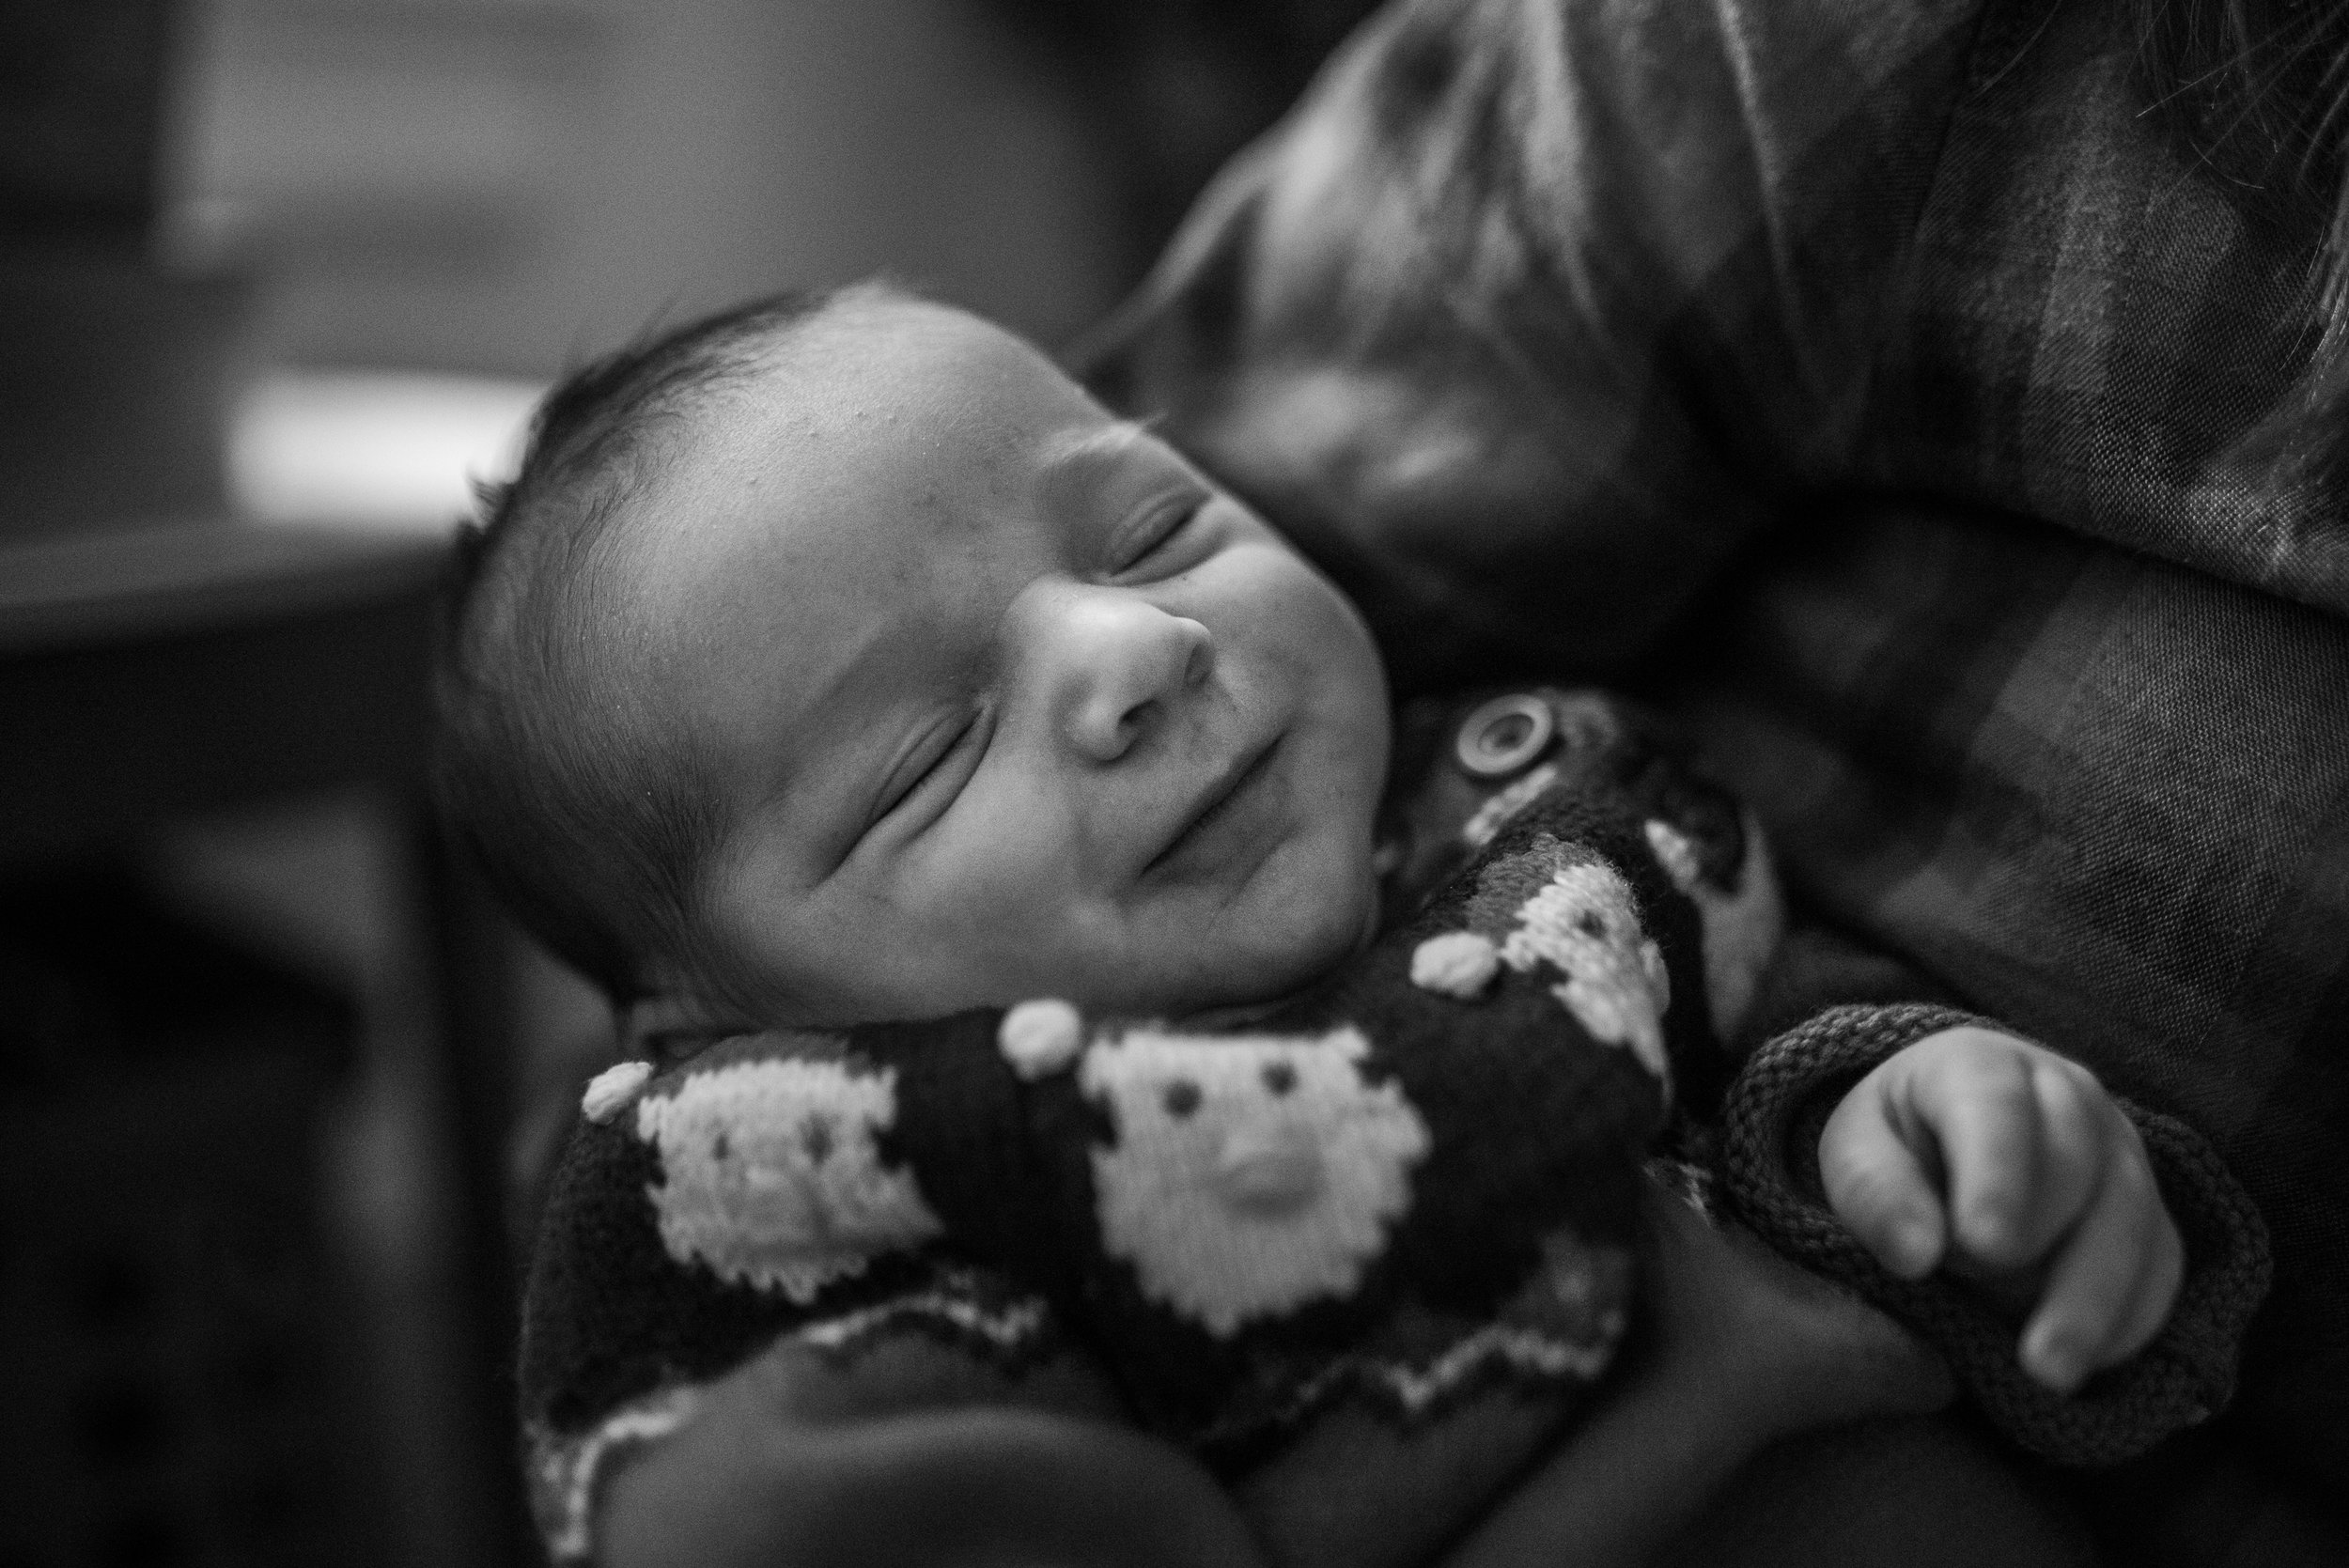 Newborn baby smiling with eyes closed wearing a Santa sweater